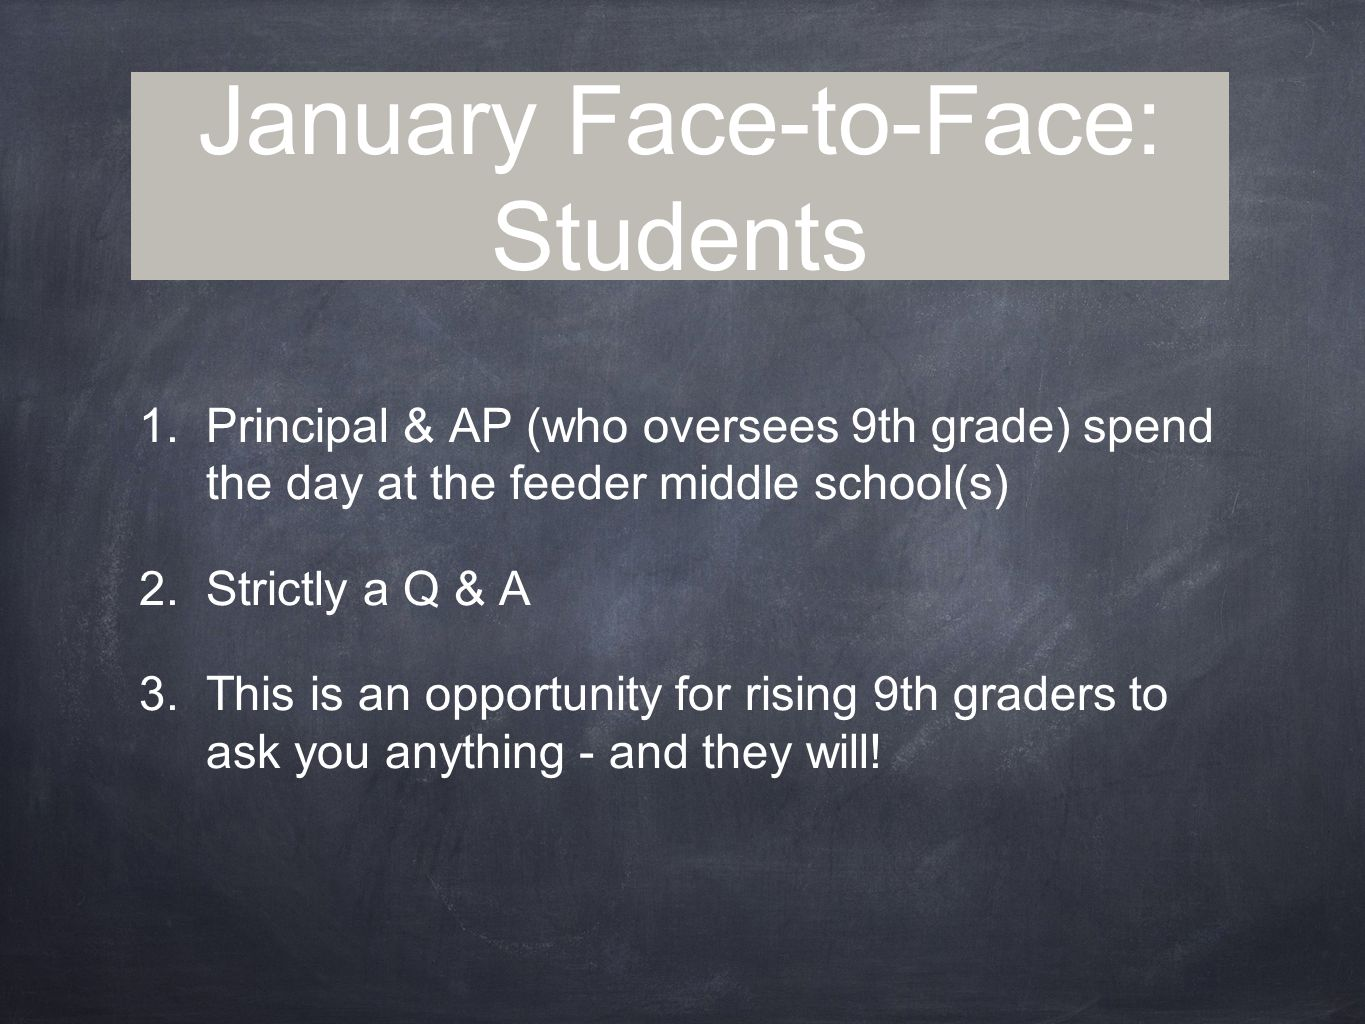 January Face-to-Face: Students 1.Principal & AP (who oversees 9th grade) spend the day at the feeder middle school(s) 2.Strictly a Q & A 3.This is an opportunity for rising 9th graders to ask you anything - and they will!